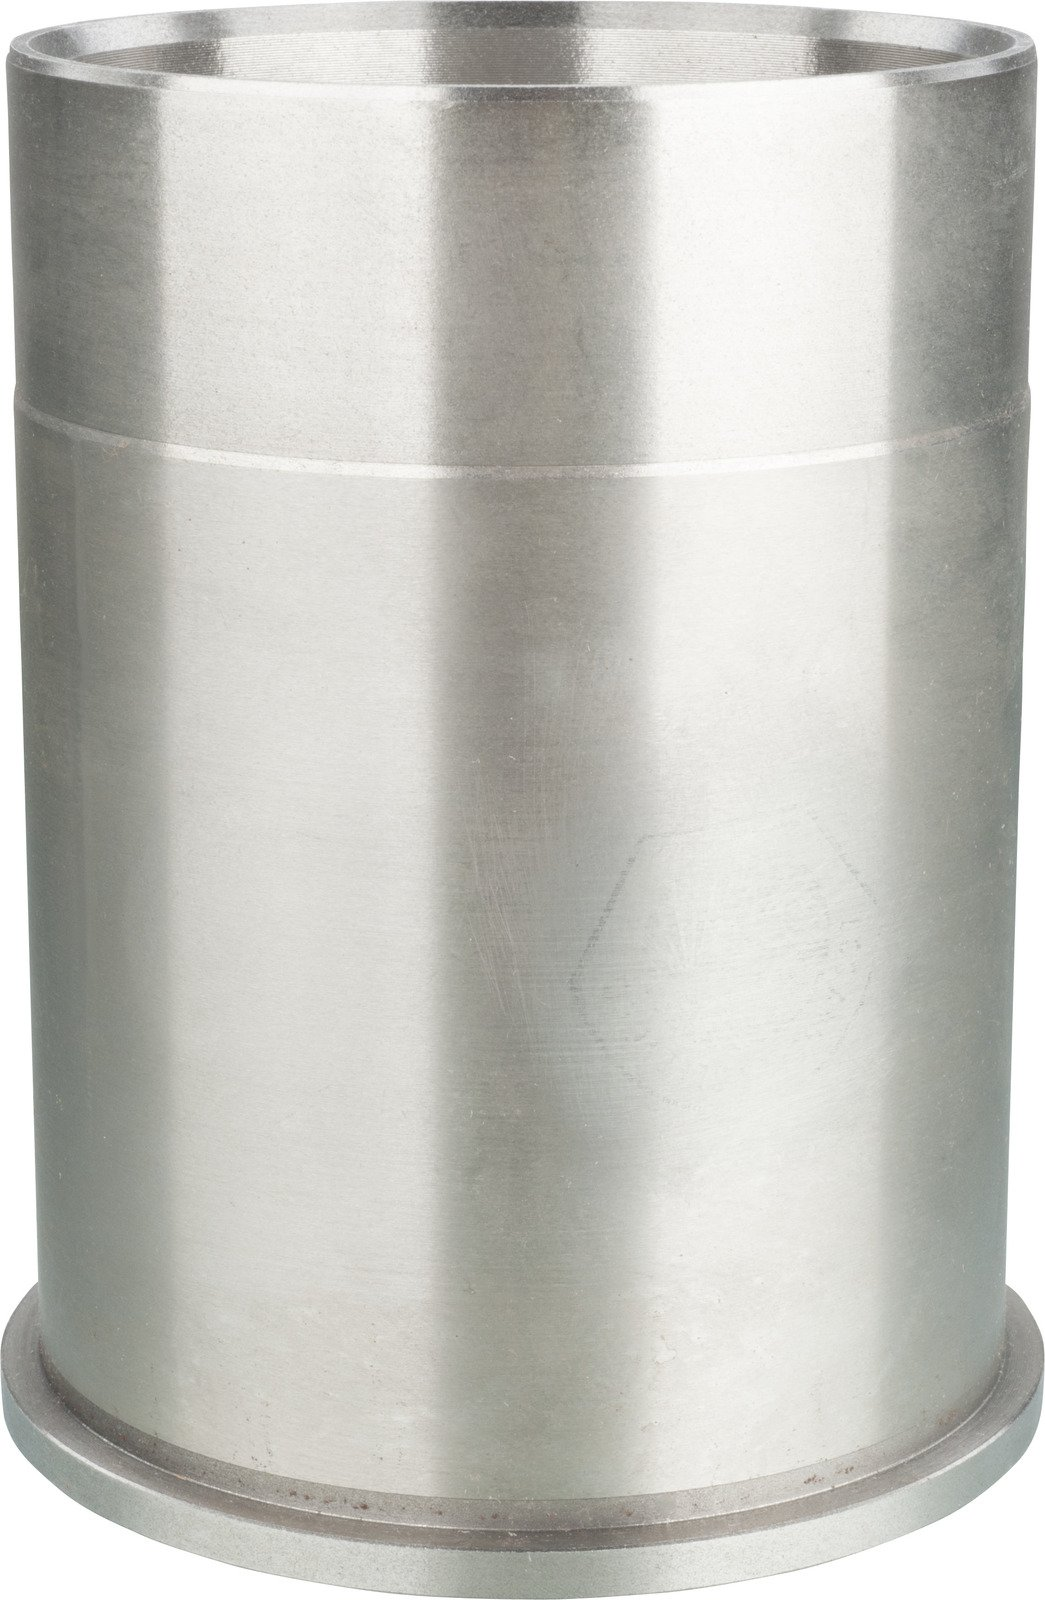 BigBore Cylinder Sleeve For 93mm Piston 50237